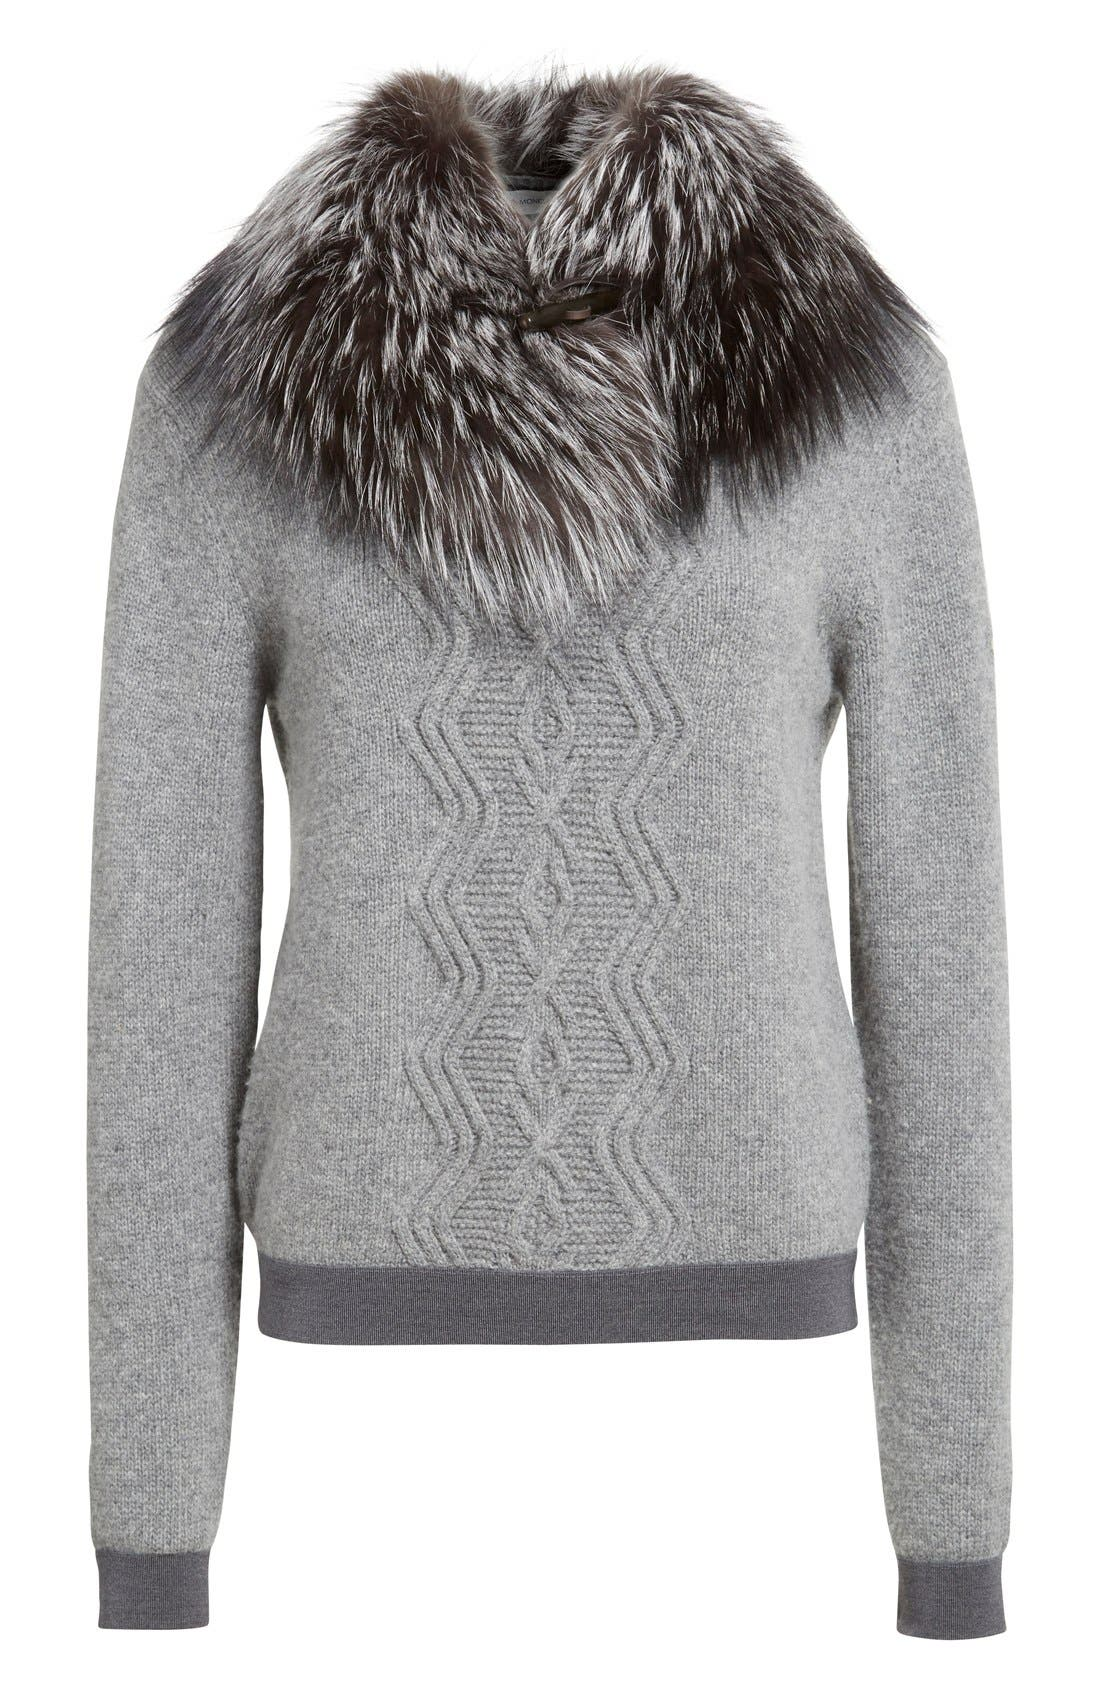 Wool & Cashmere Sweater with Removable Genuine Fox Fur Collar,                             Alternate thumbnail 6, color,                             031